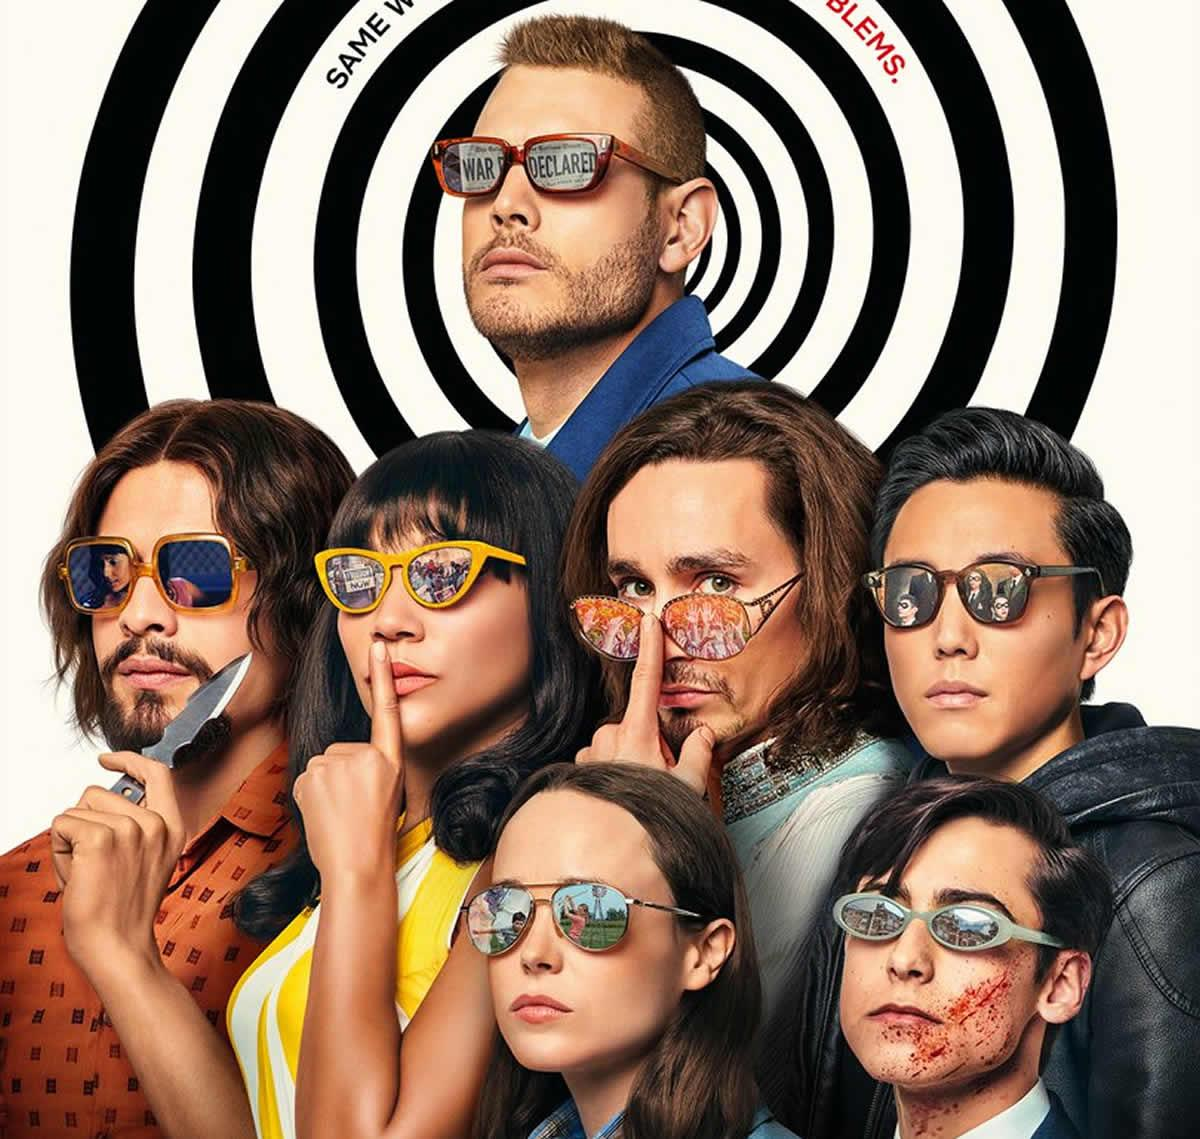 Nuevo póster de la temporada 2 de The Umbrella Academy